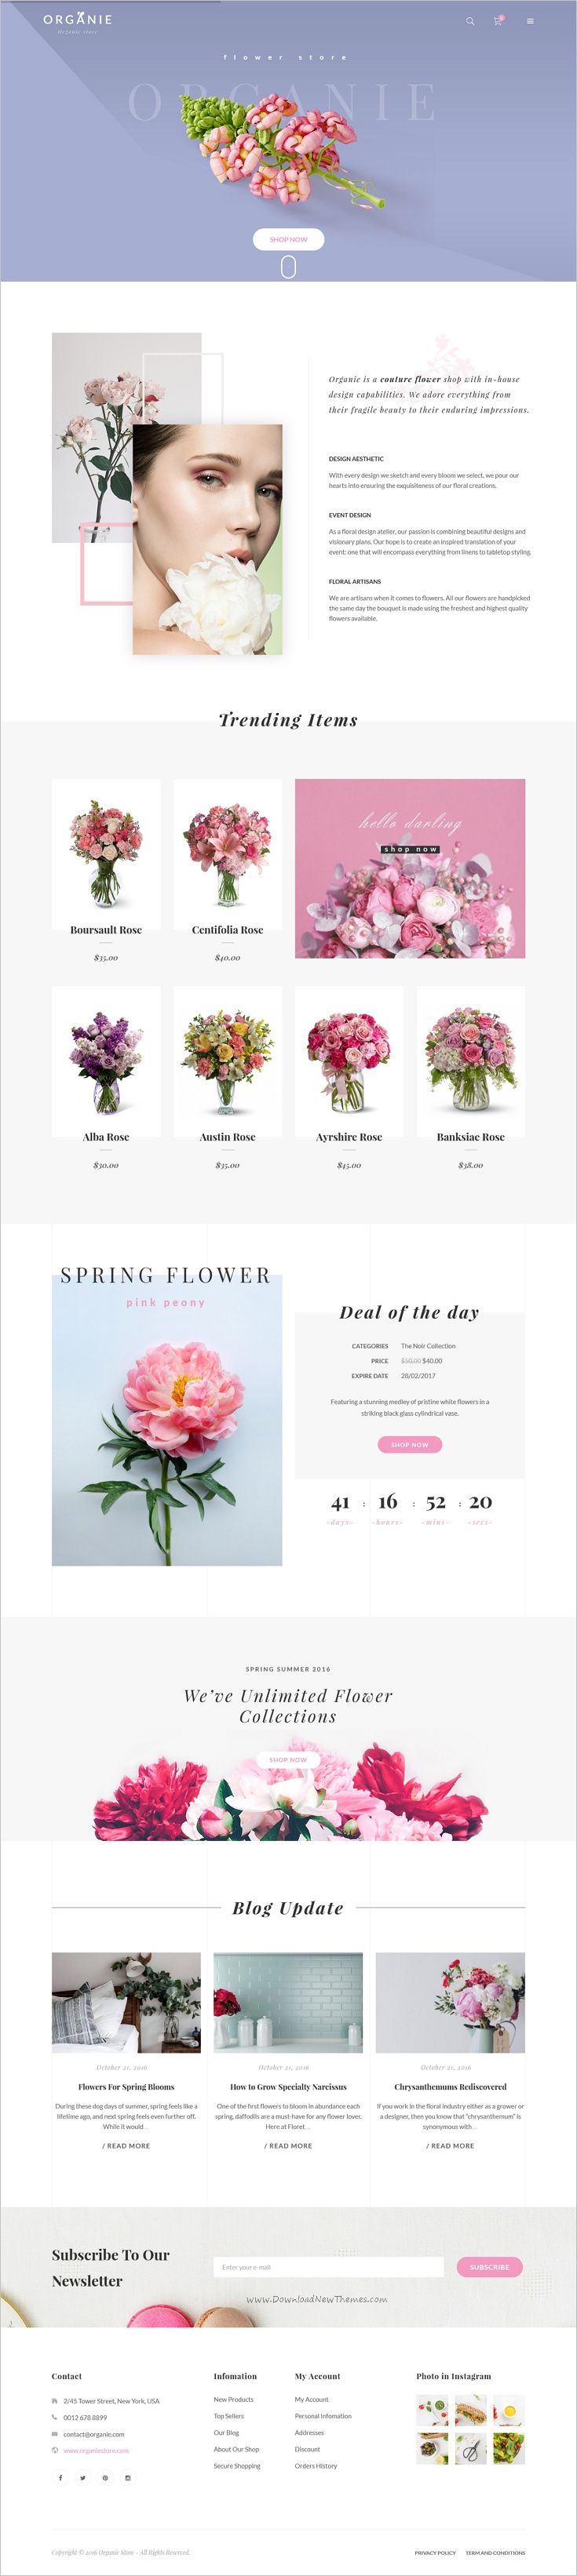 Organie is a wonderful responsive 12in1 WooCommerce #WordPress theme for #webdesign organic store, farm, cake and #flower shop eCommerce website download now➩ https://themeforest.net/item/organie-an-organic-store-farm-cake-flower-shop-woocommerce-theme/18777939?ref=Datasata